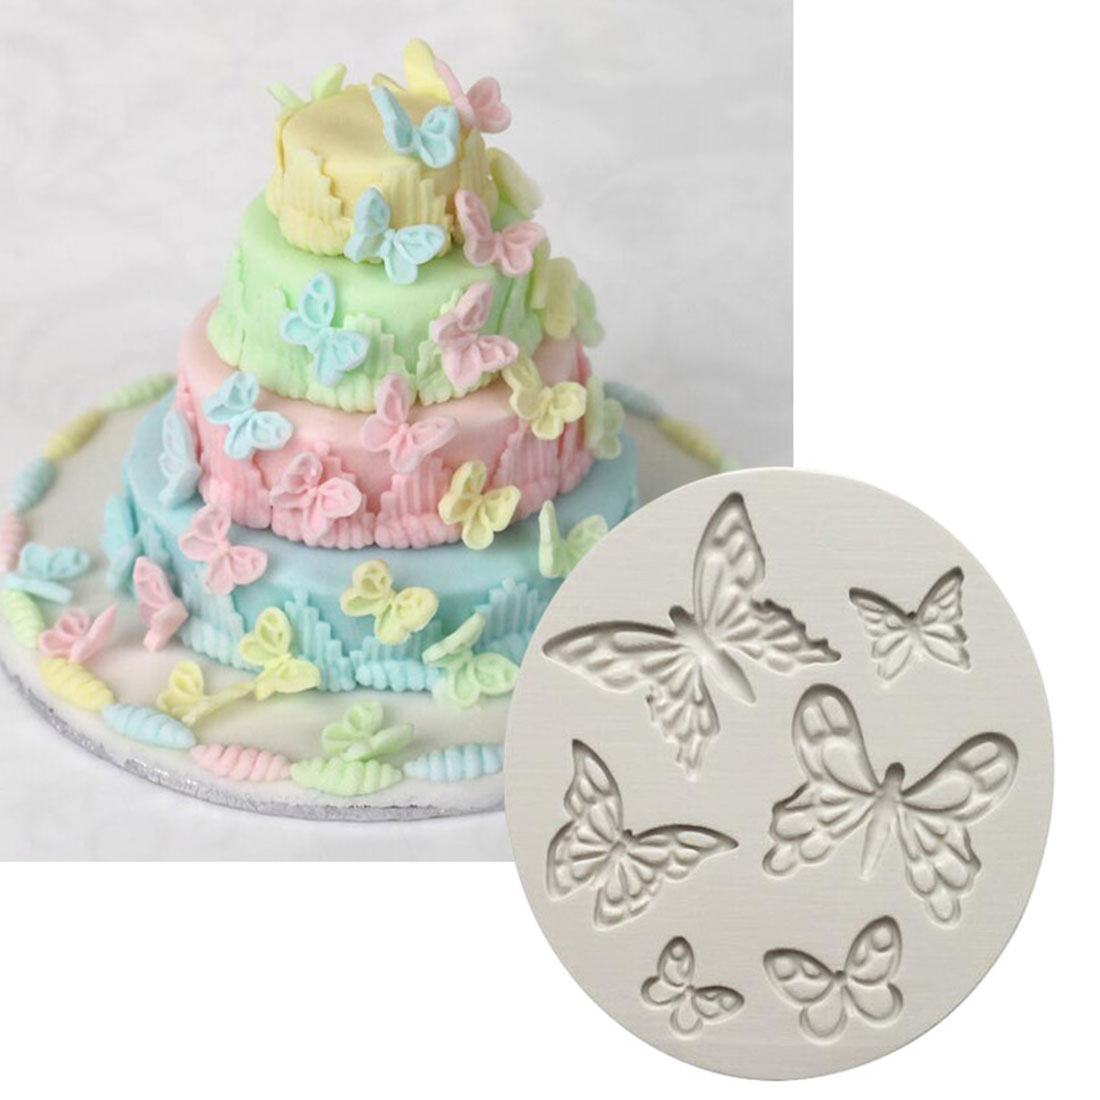 DIY Sugar craft Cake Butterfly Leaves Border Silicone Mold ...